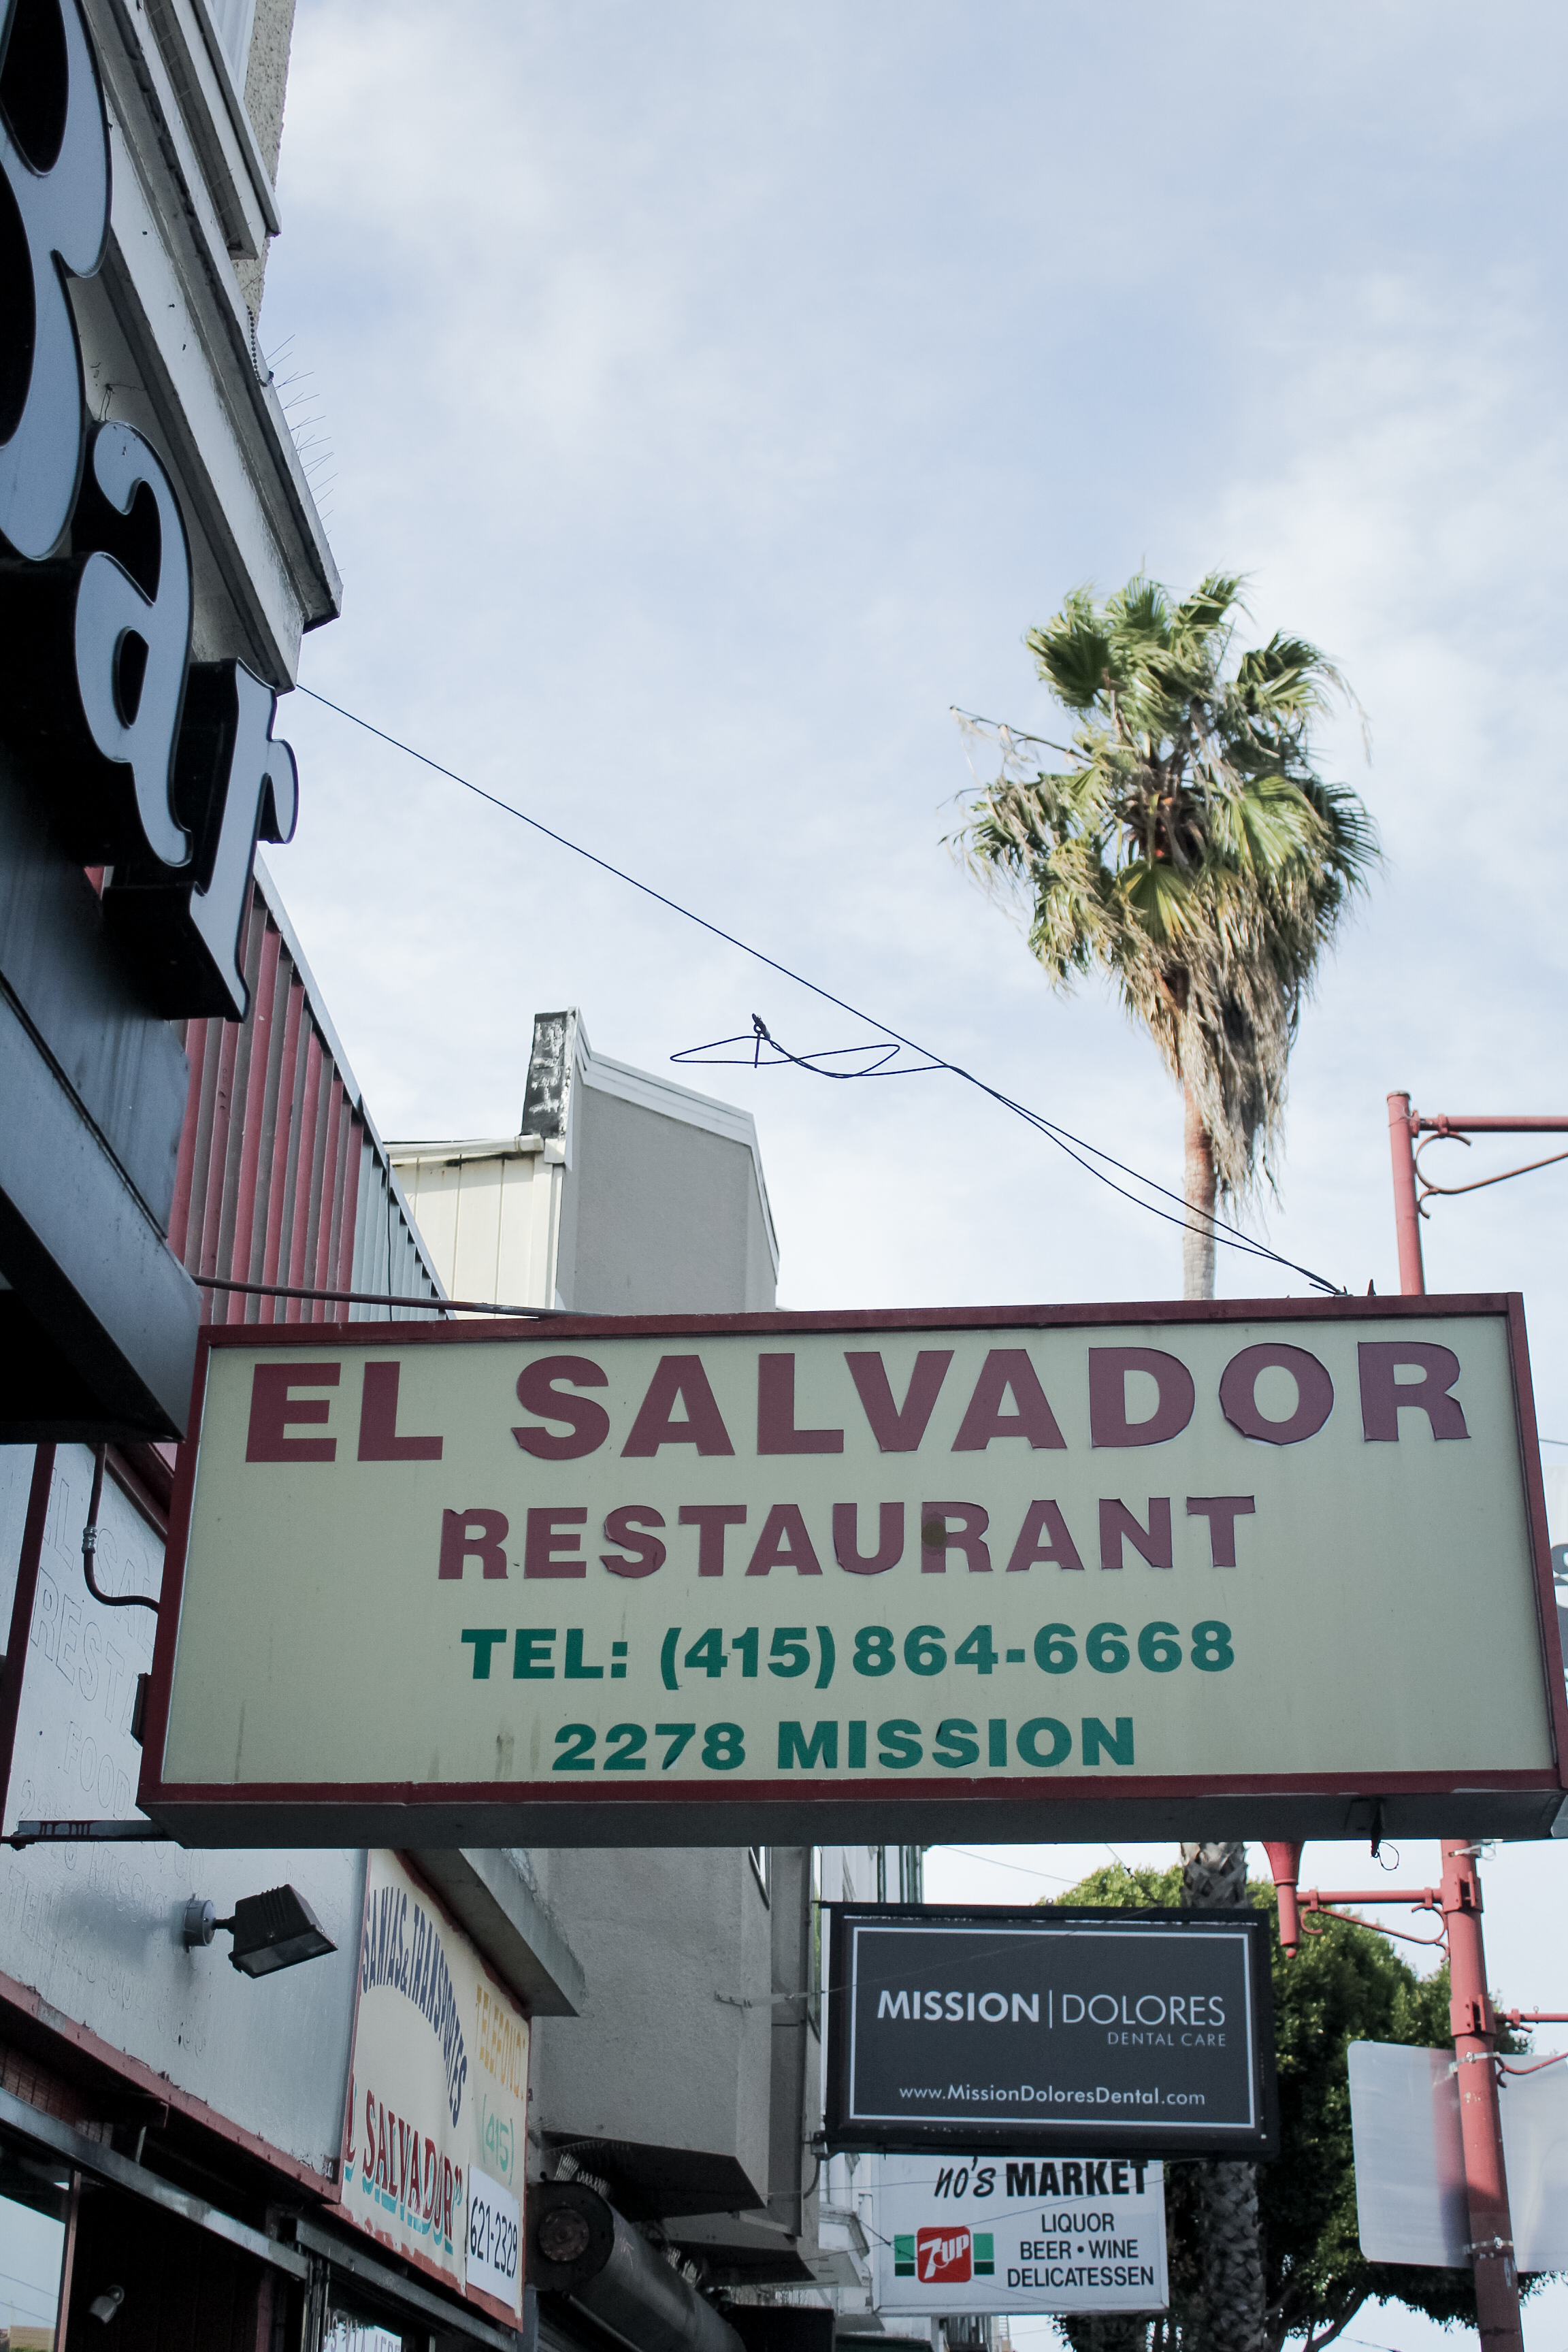 El Salvador restaurant in San Francisco's Mission District | tintedgreen